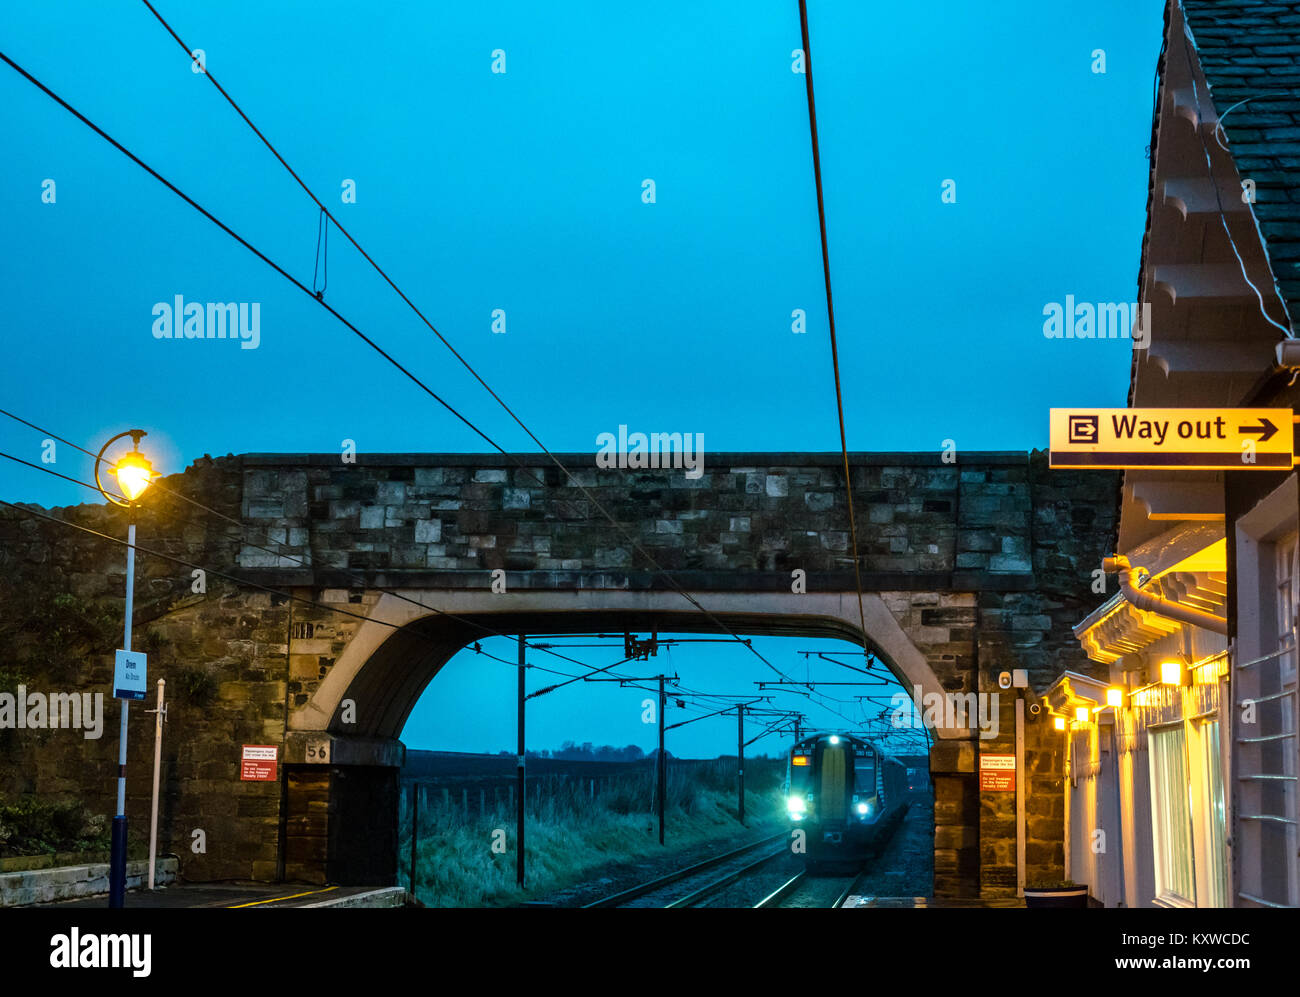 Drem Railway Station, East Lothian, Scotland, UK, at dusk with lights on and ScotRail train approaching under a - Stock Image